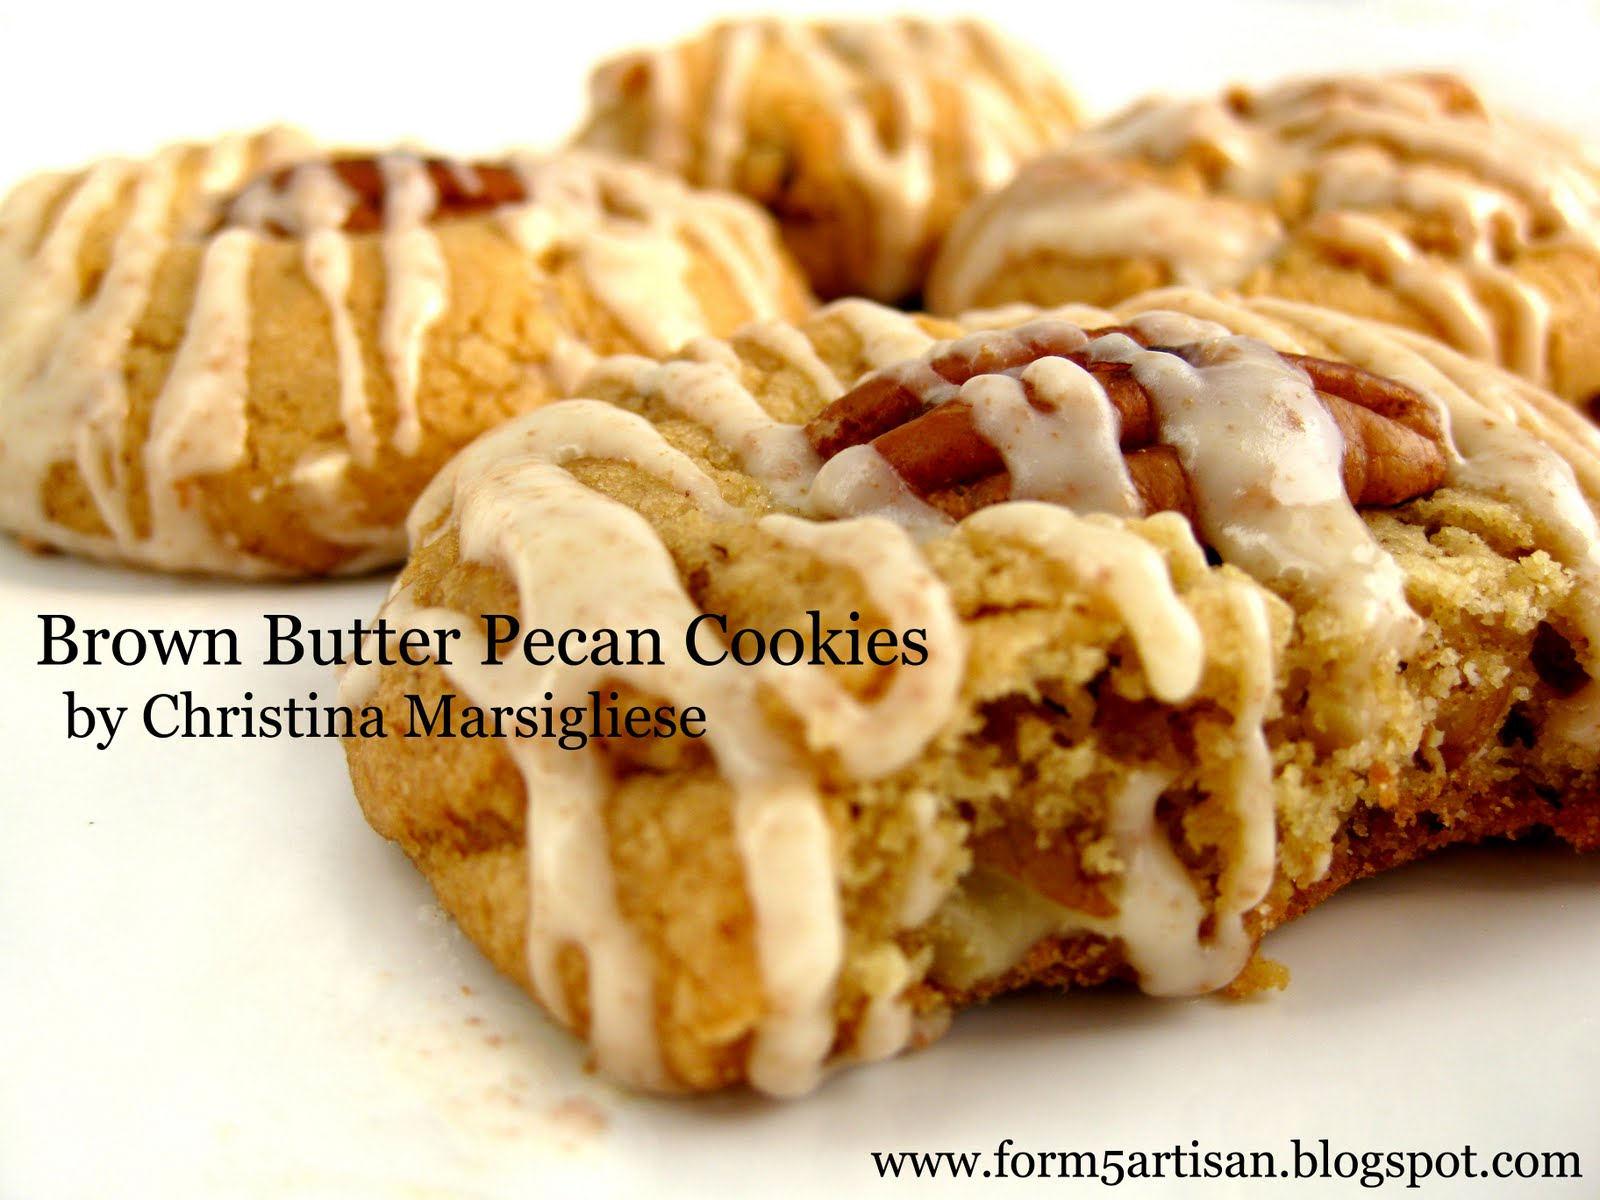 Scientifically Sweet: Brown Butter Pecan Cookies